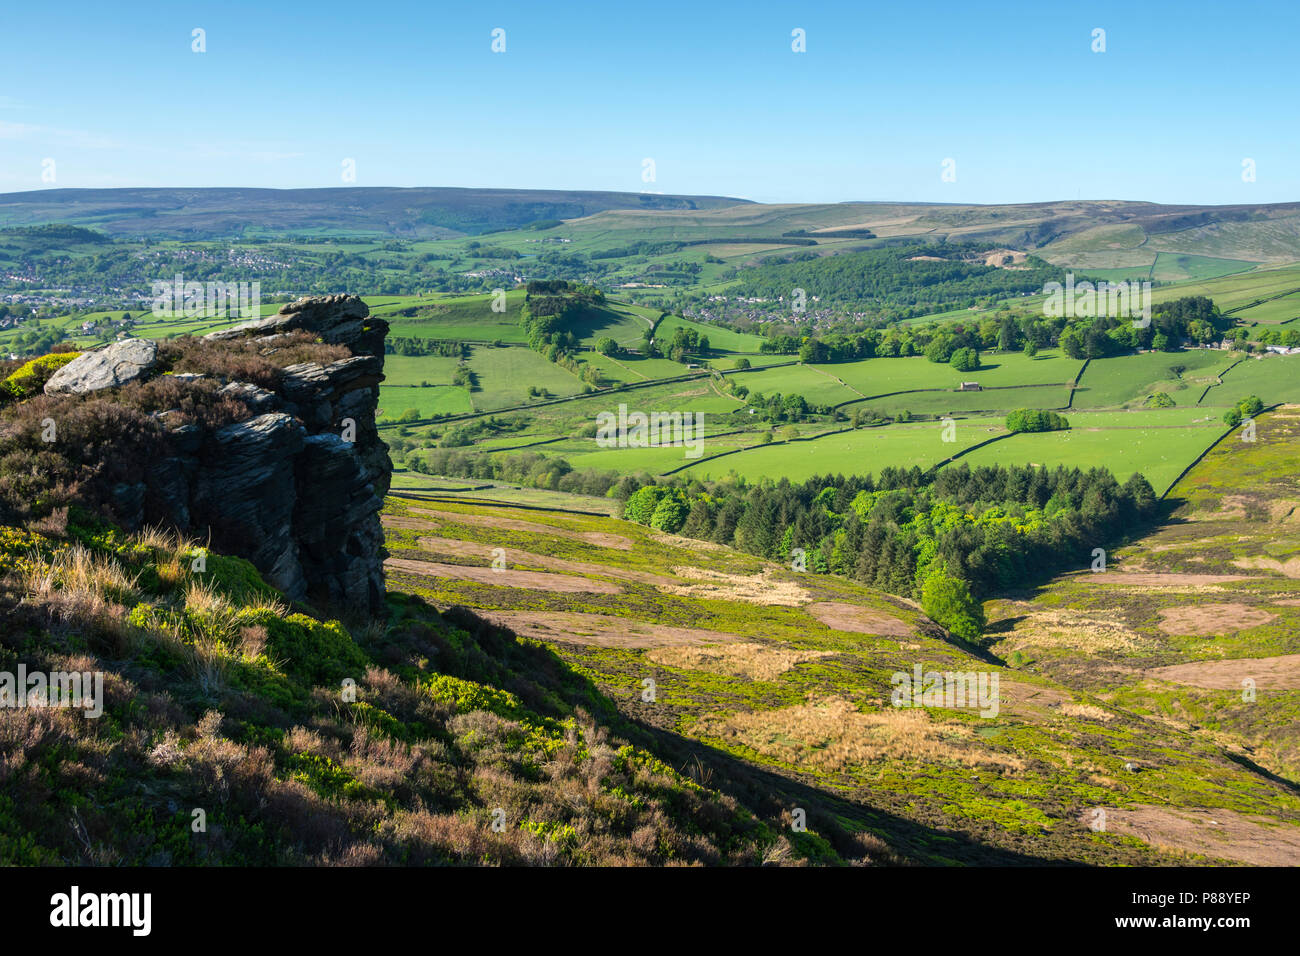 The Longdendale Moors from the Worm Stones, Shaw Moor on Chunal Moor, near Glossop, Peak District, Derbyshire, England, UK. - Stock Image